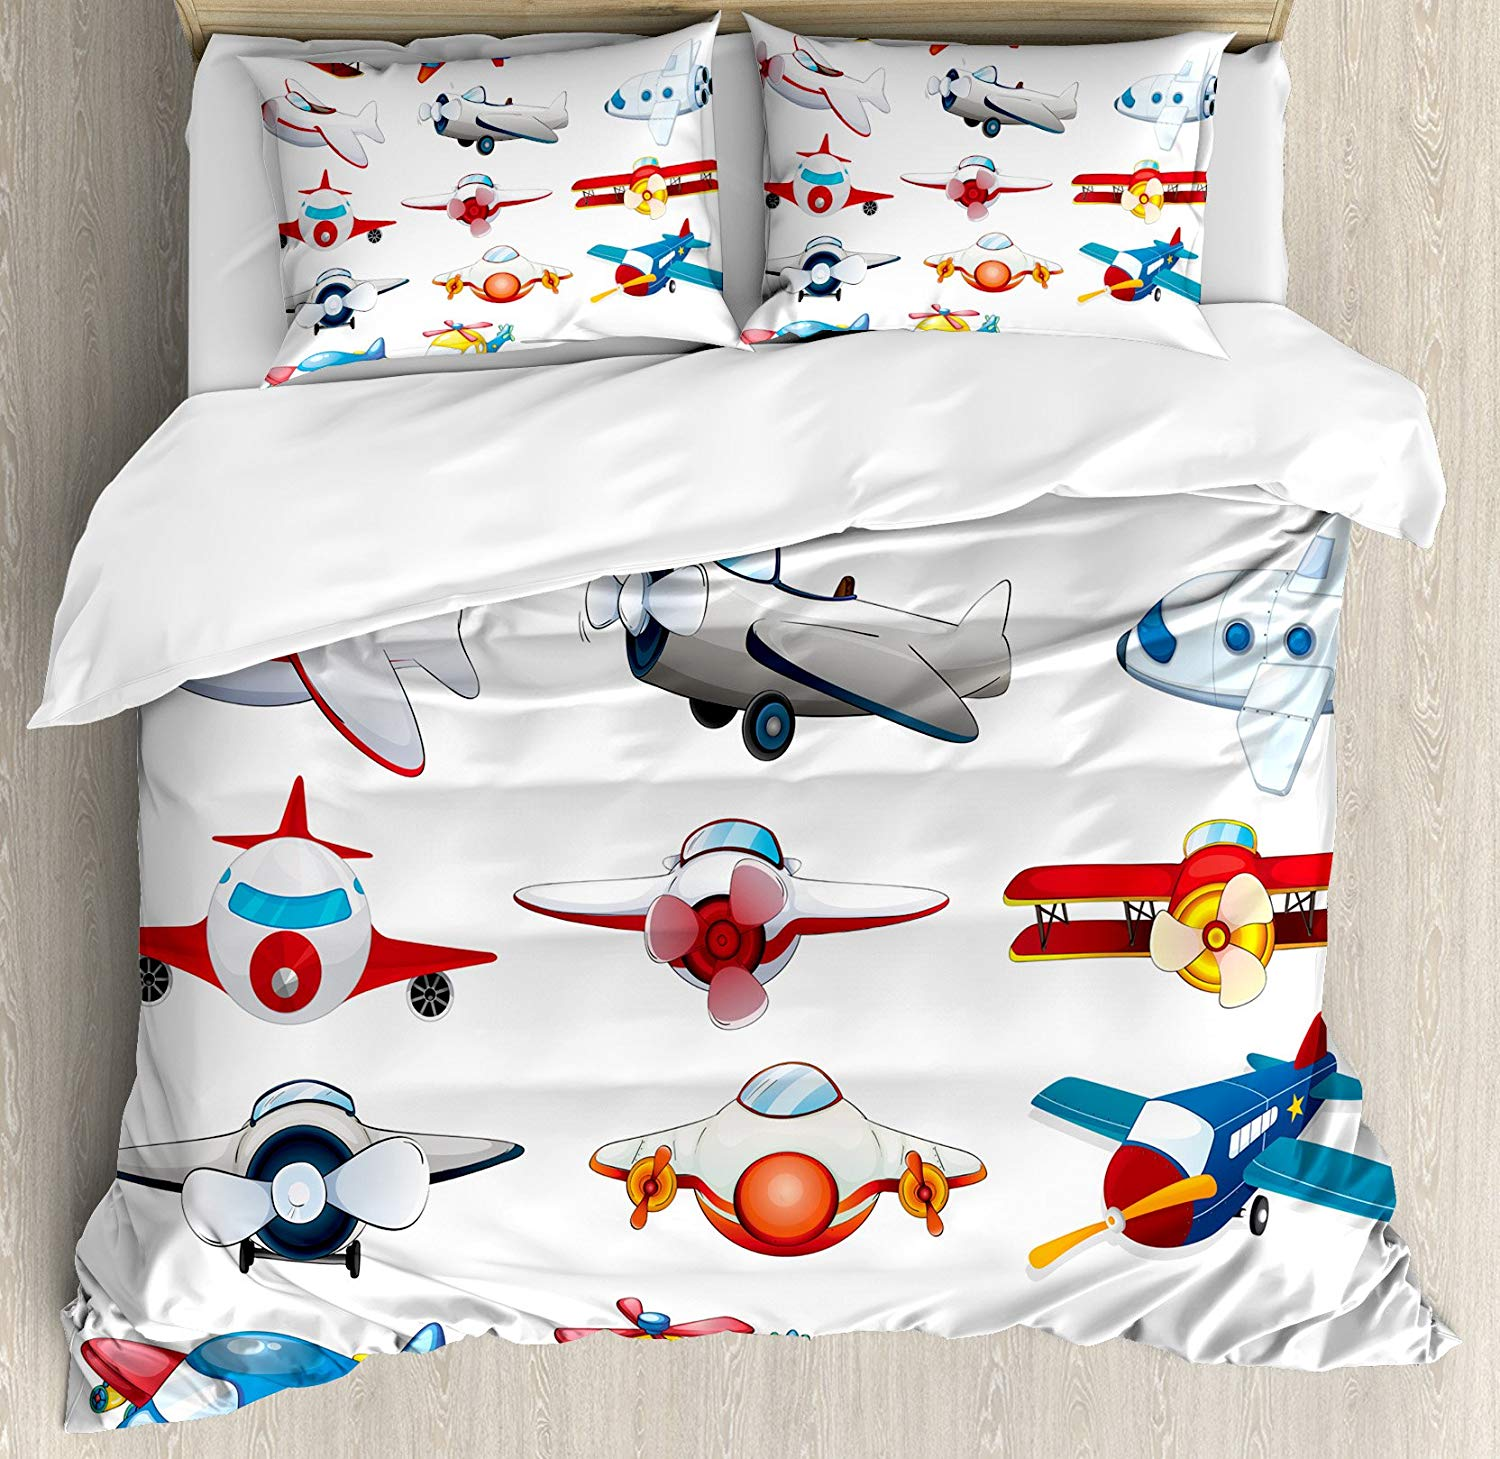 Airplane Decor Duvet Cover Set Queen Size Kind Planes Toys Amusement Automated Childhood Cartoon Machine 4 Piece Bedding Set